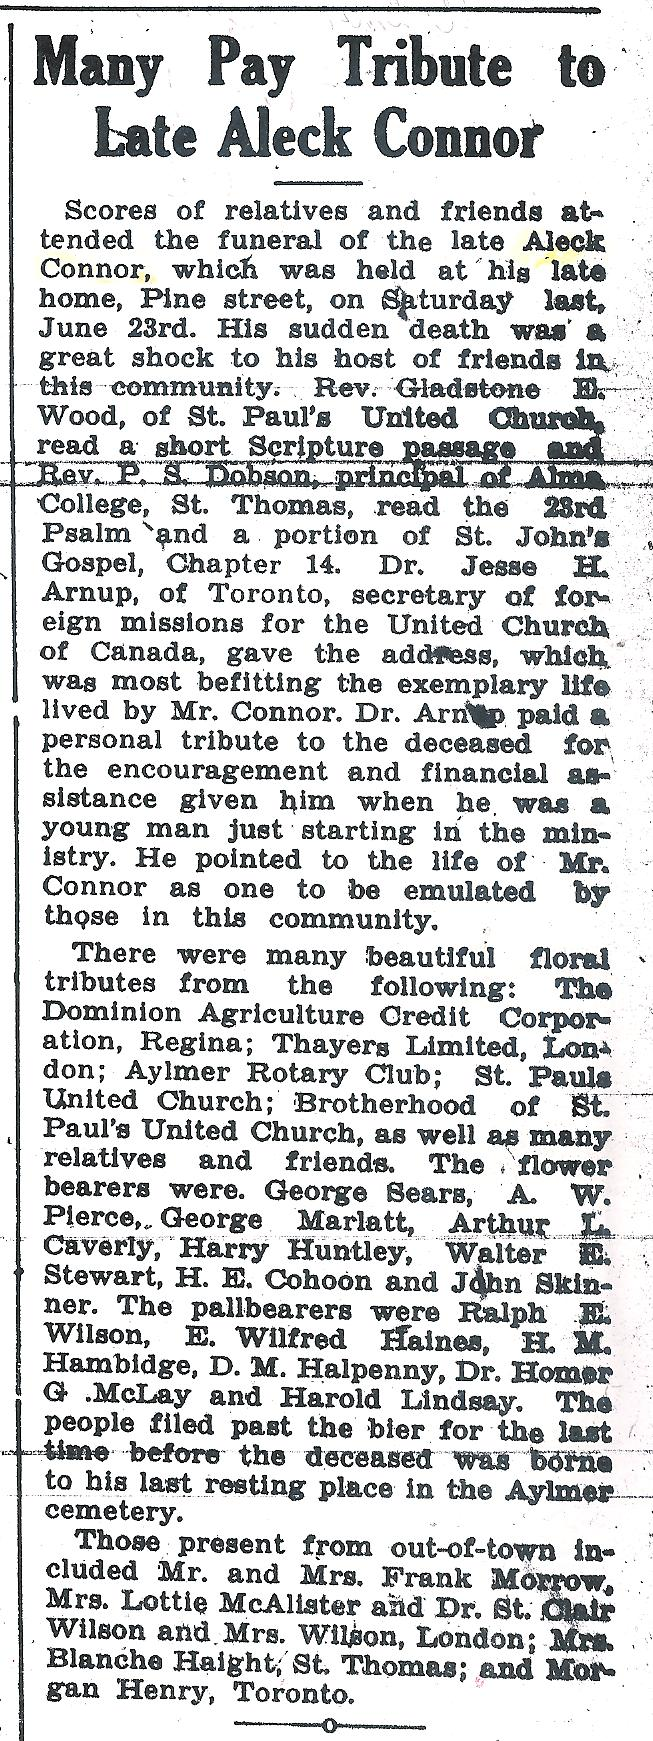 Aylmer Express Thur June 28 1934 p1 c6 Aleck Connor obituary